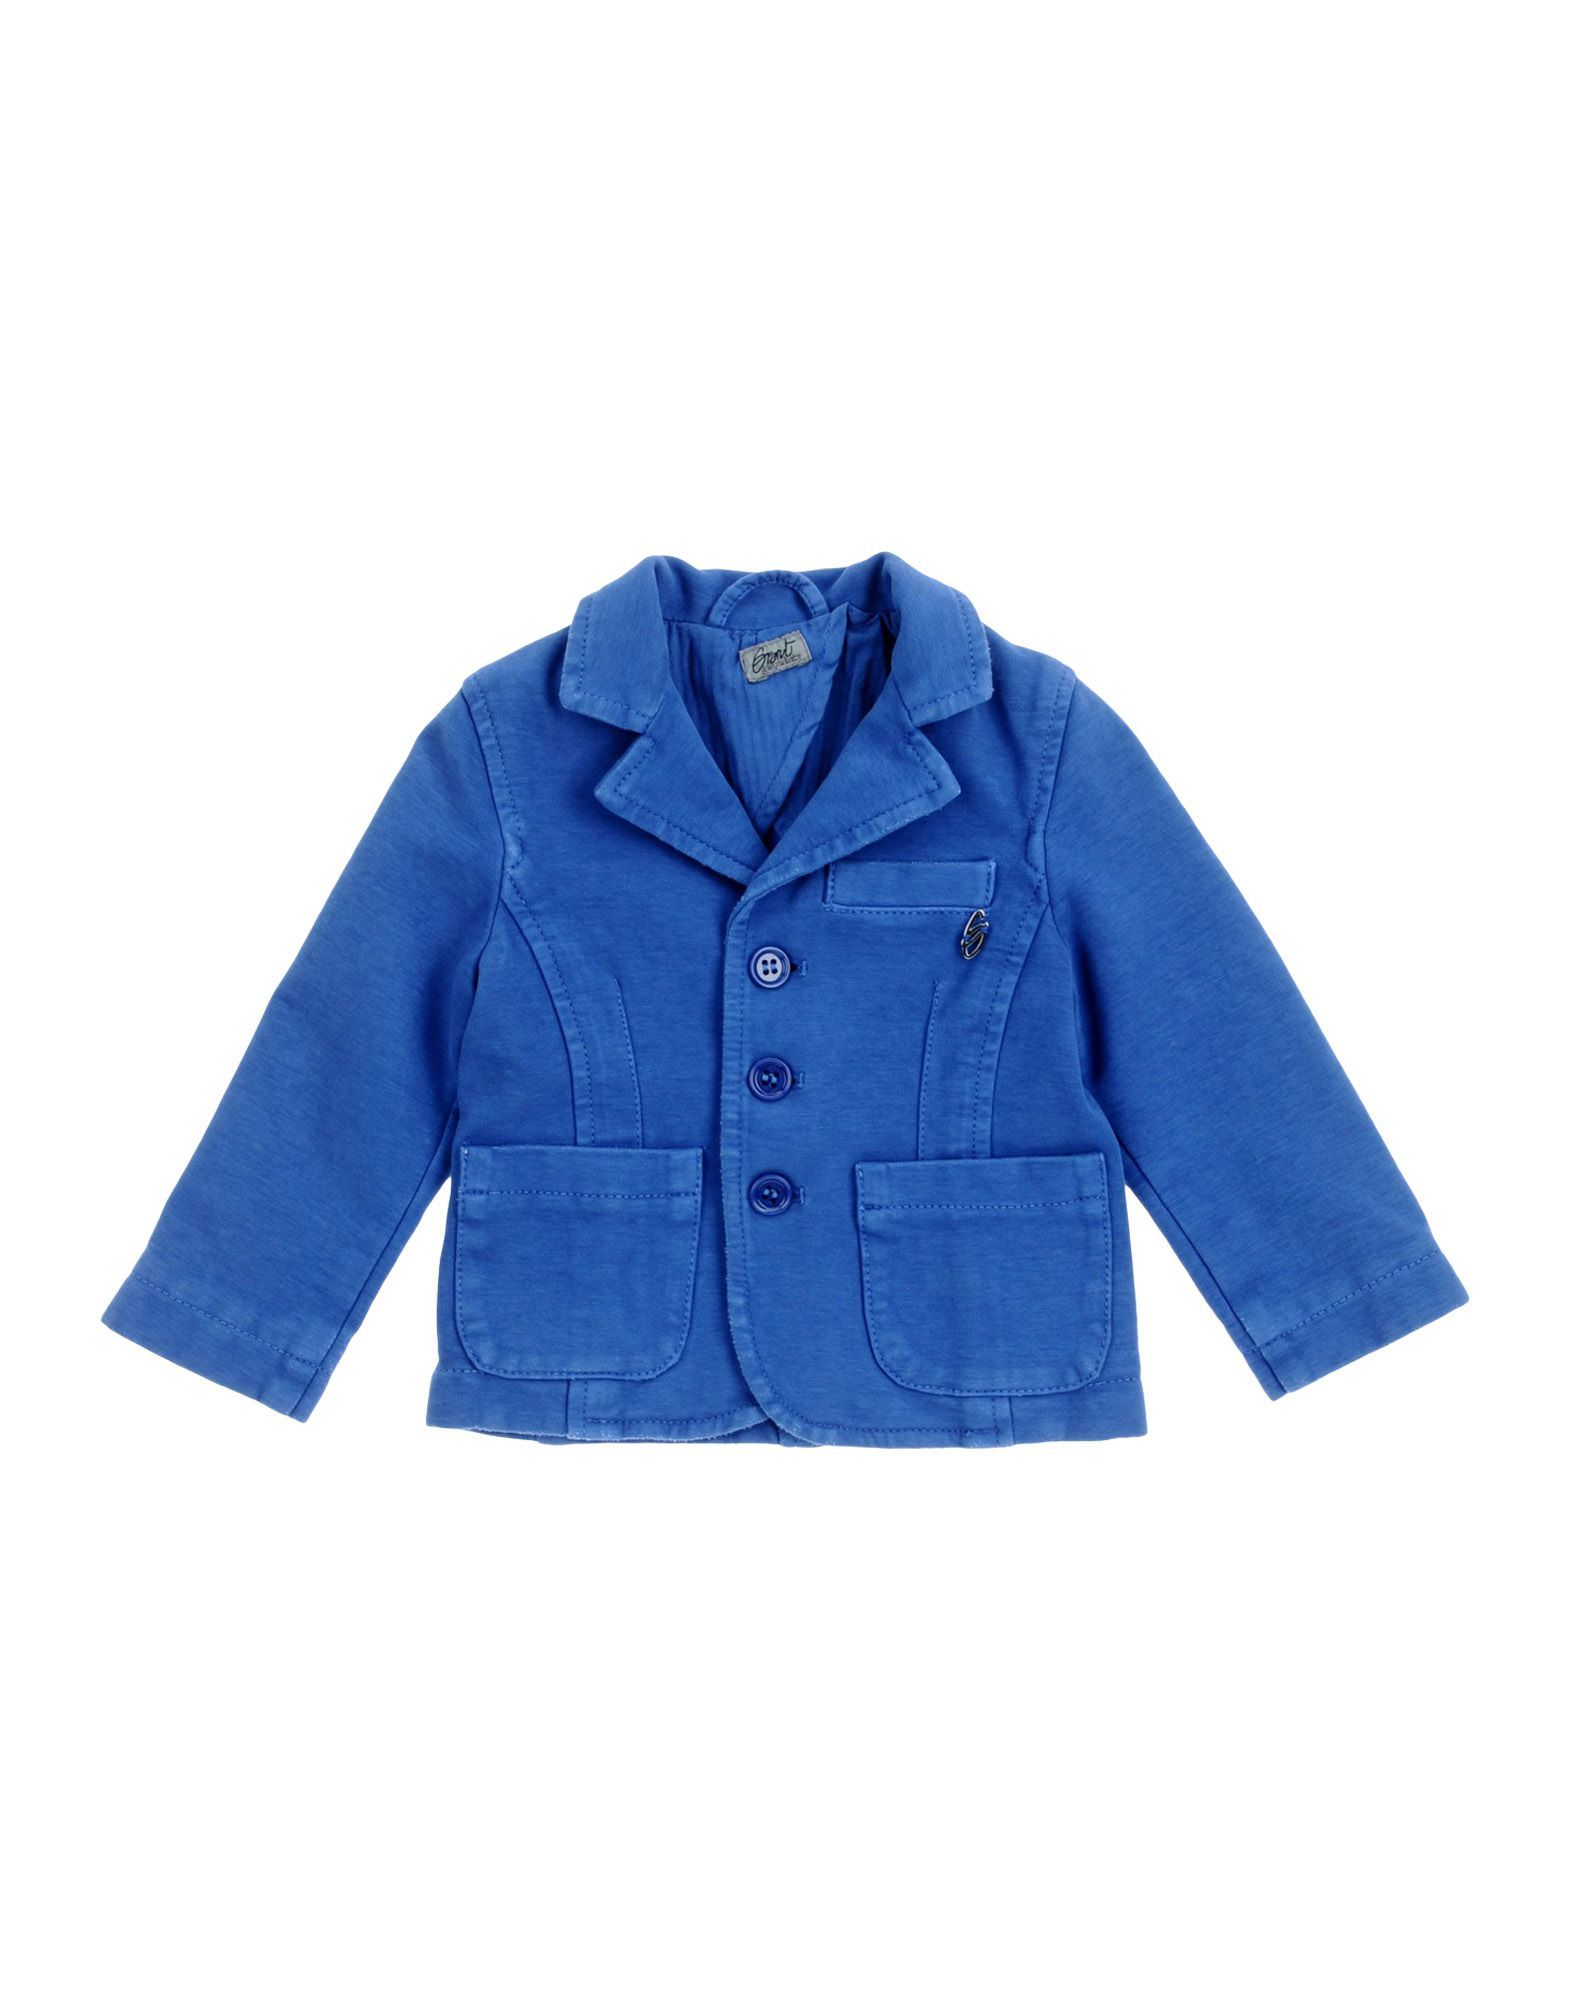 SUITS AND JACKETS Grant Gar�on Baby Blue Boy Cotton